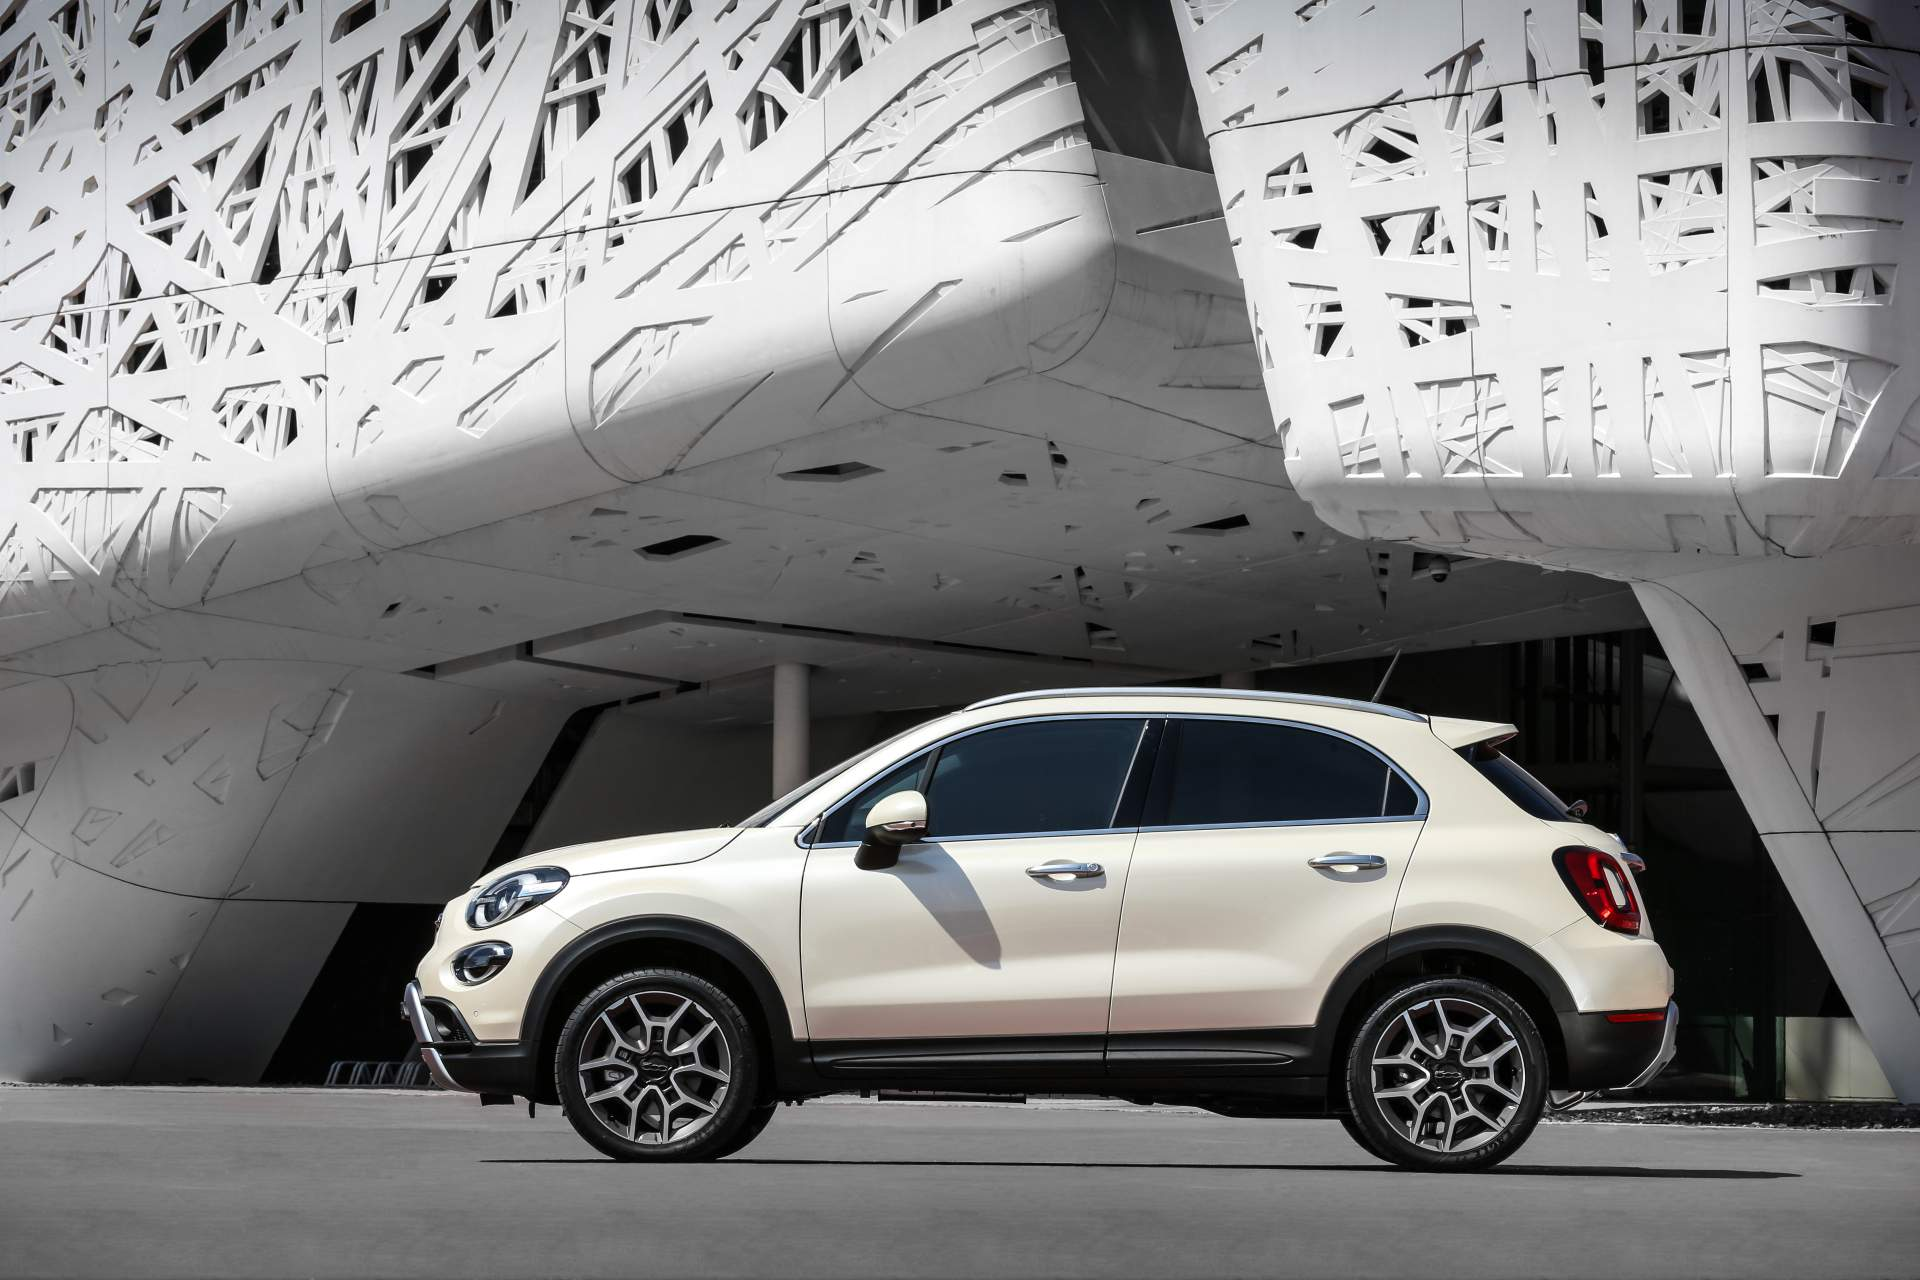 2016 Fiat 500X - Test Drive Review - CarGurus |Tricked Out Fiat 500x